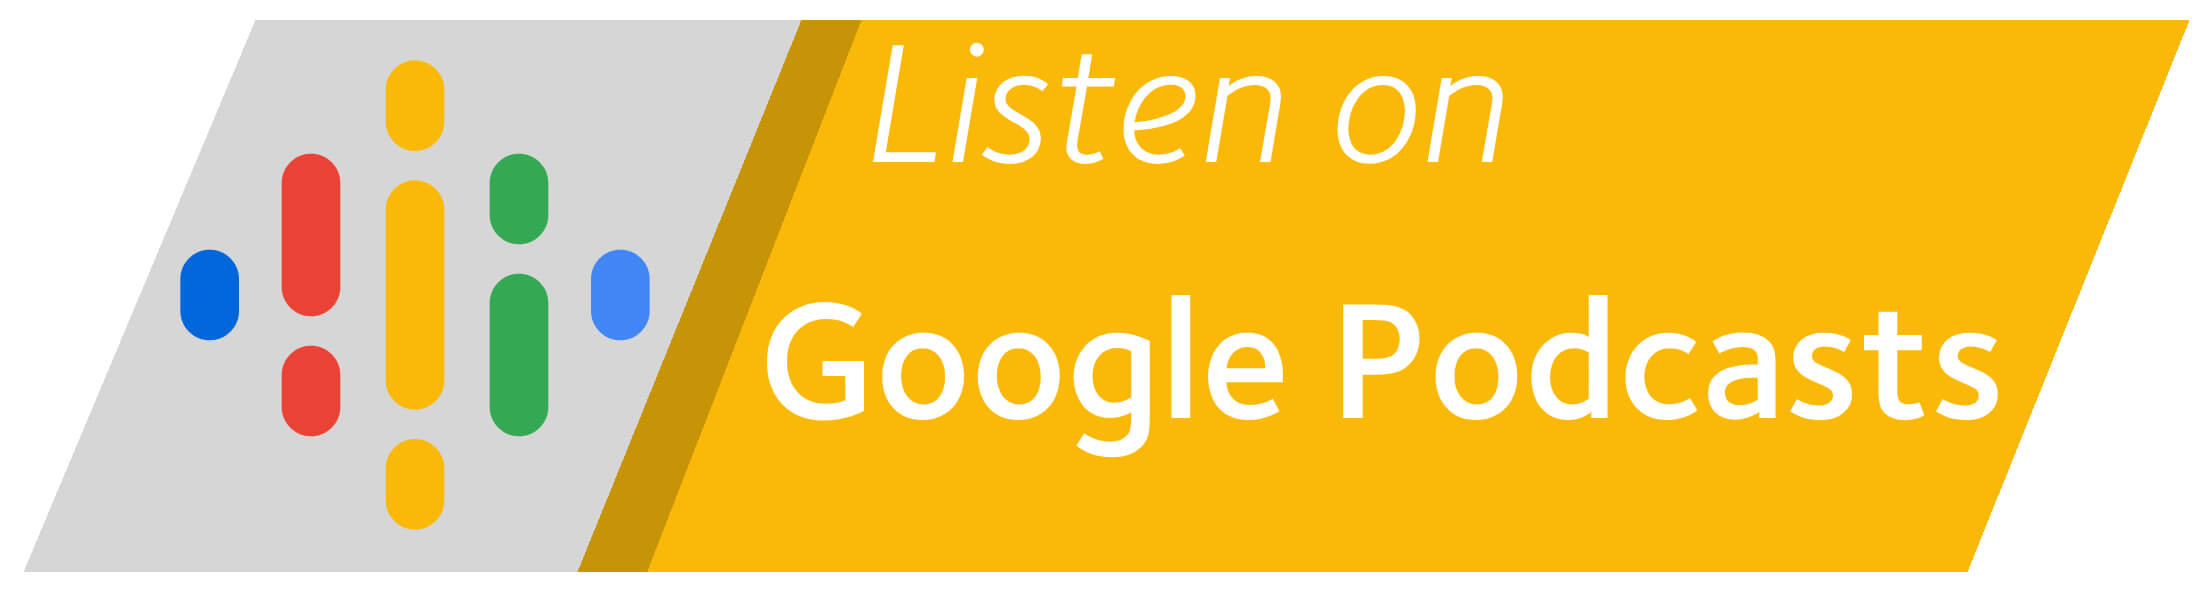 Podcasts for Entrepreneurs on Google Podcasts